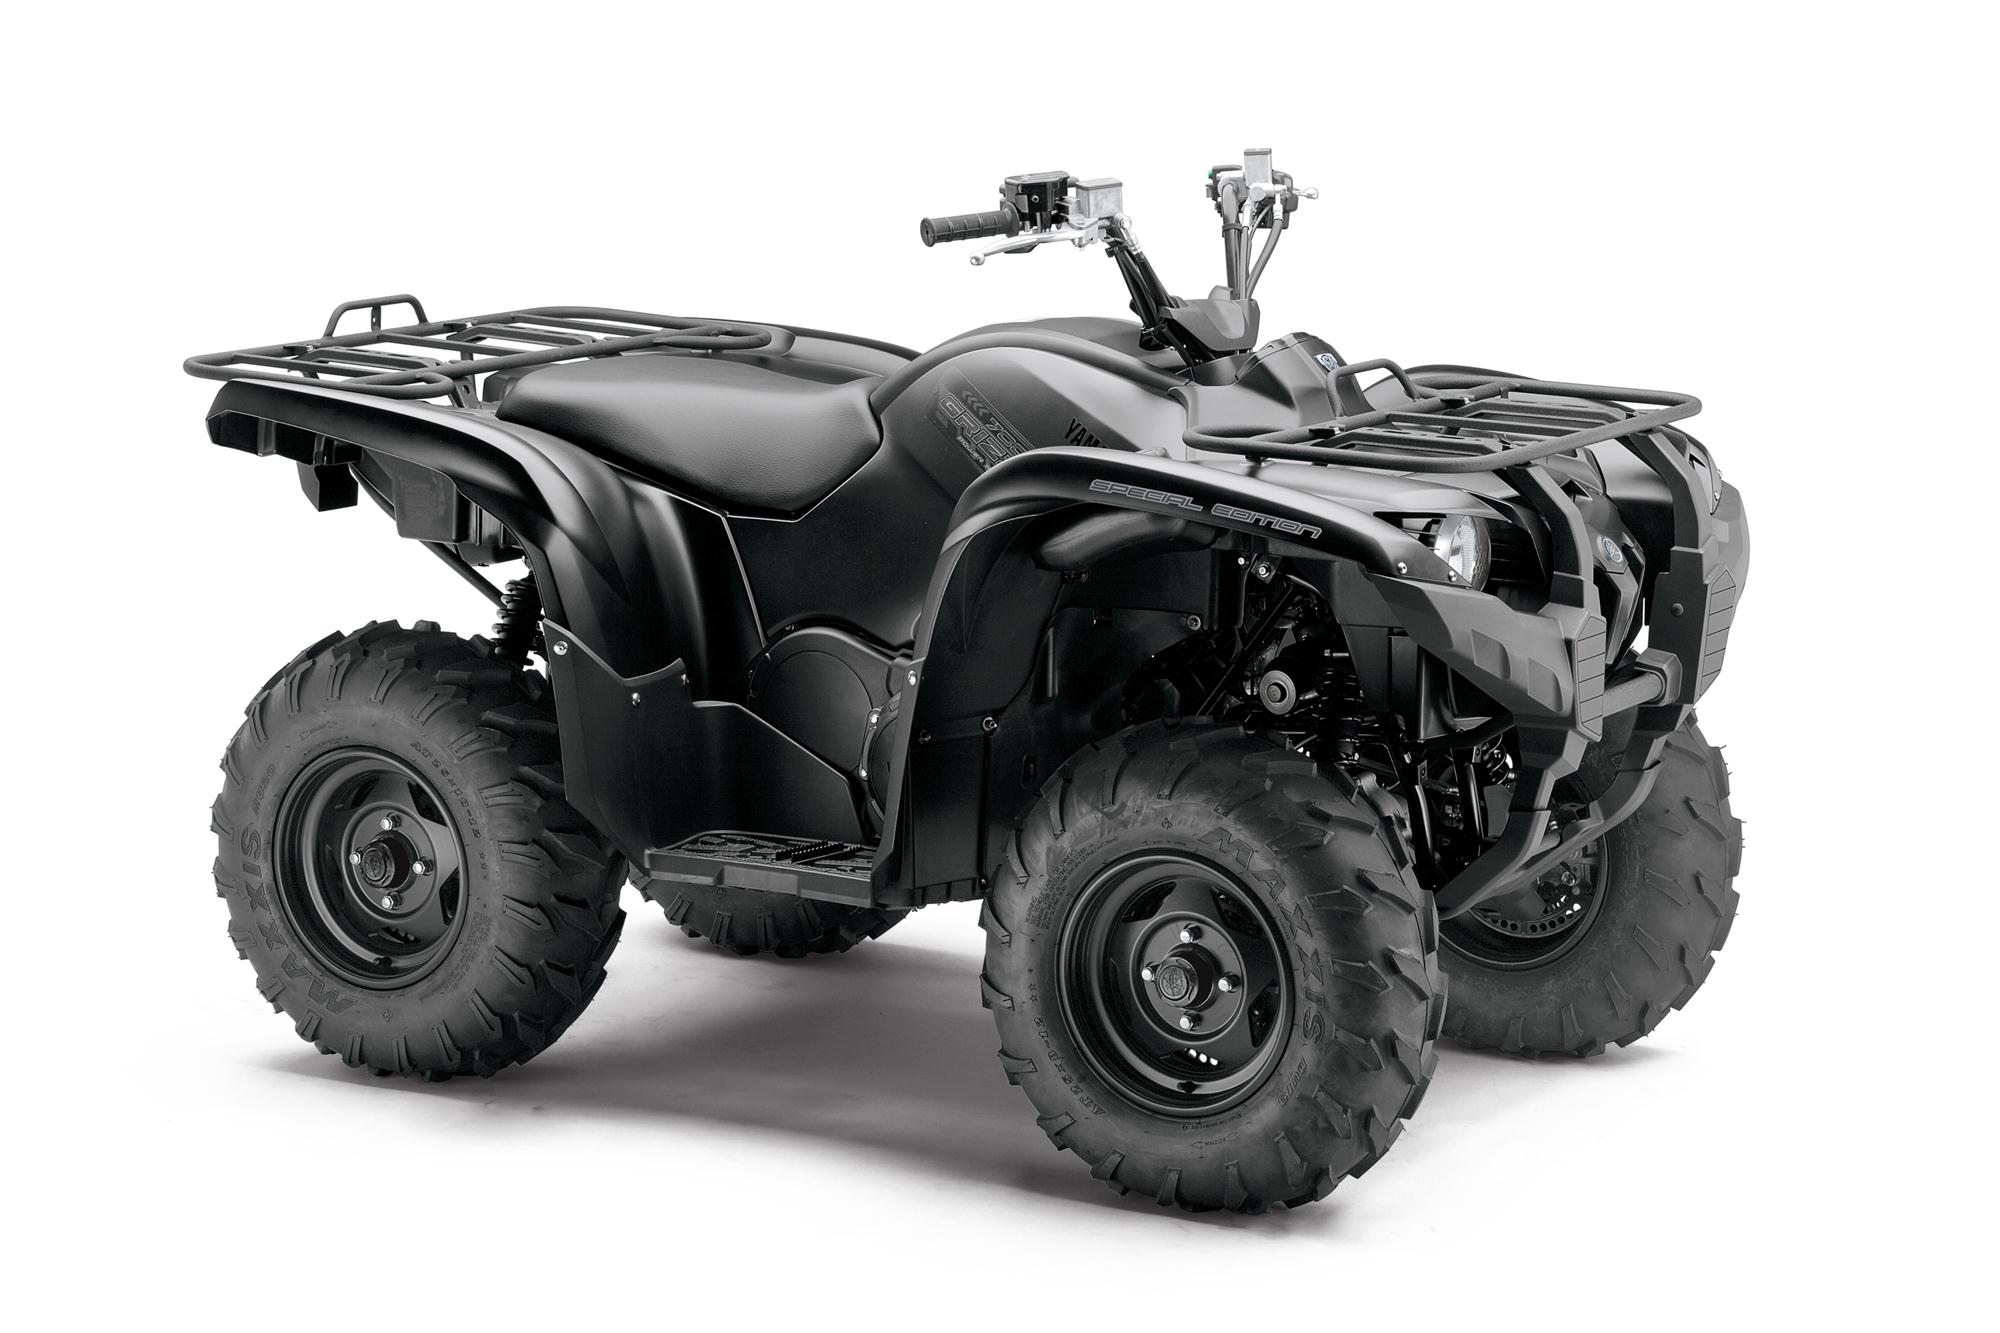 yamaha grizzly 700 fi automatic 4x4 eps special edition specs 2012 2013 autoevolution. Black Bedroom Furniture Sets. Home Design Ideas